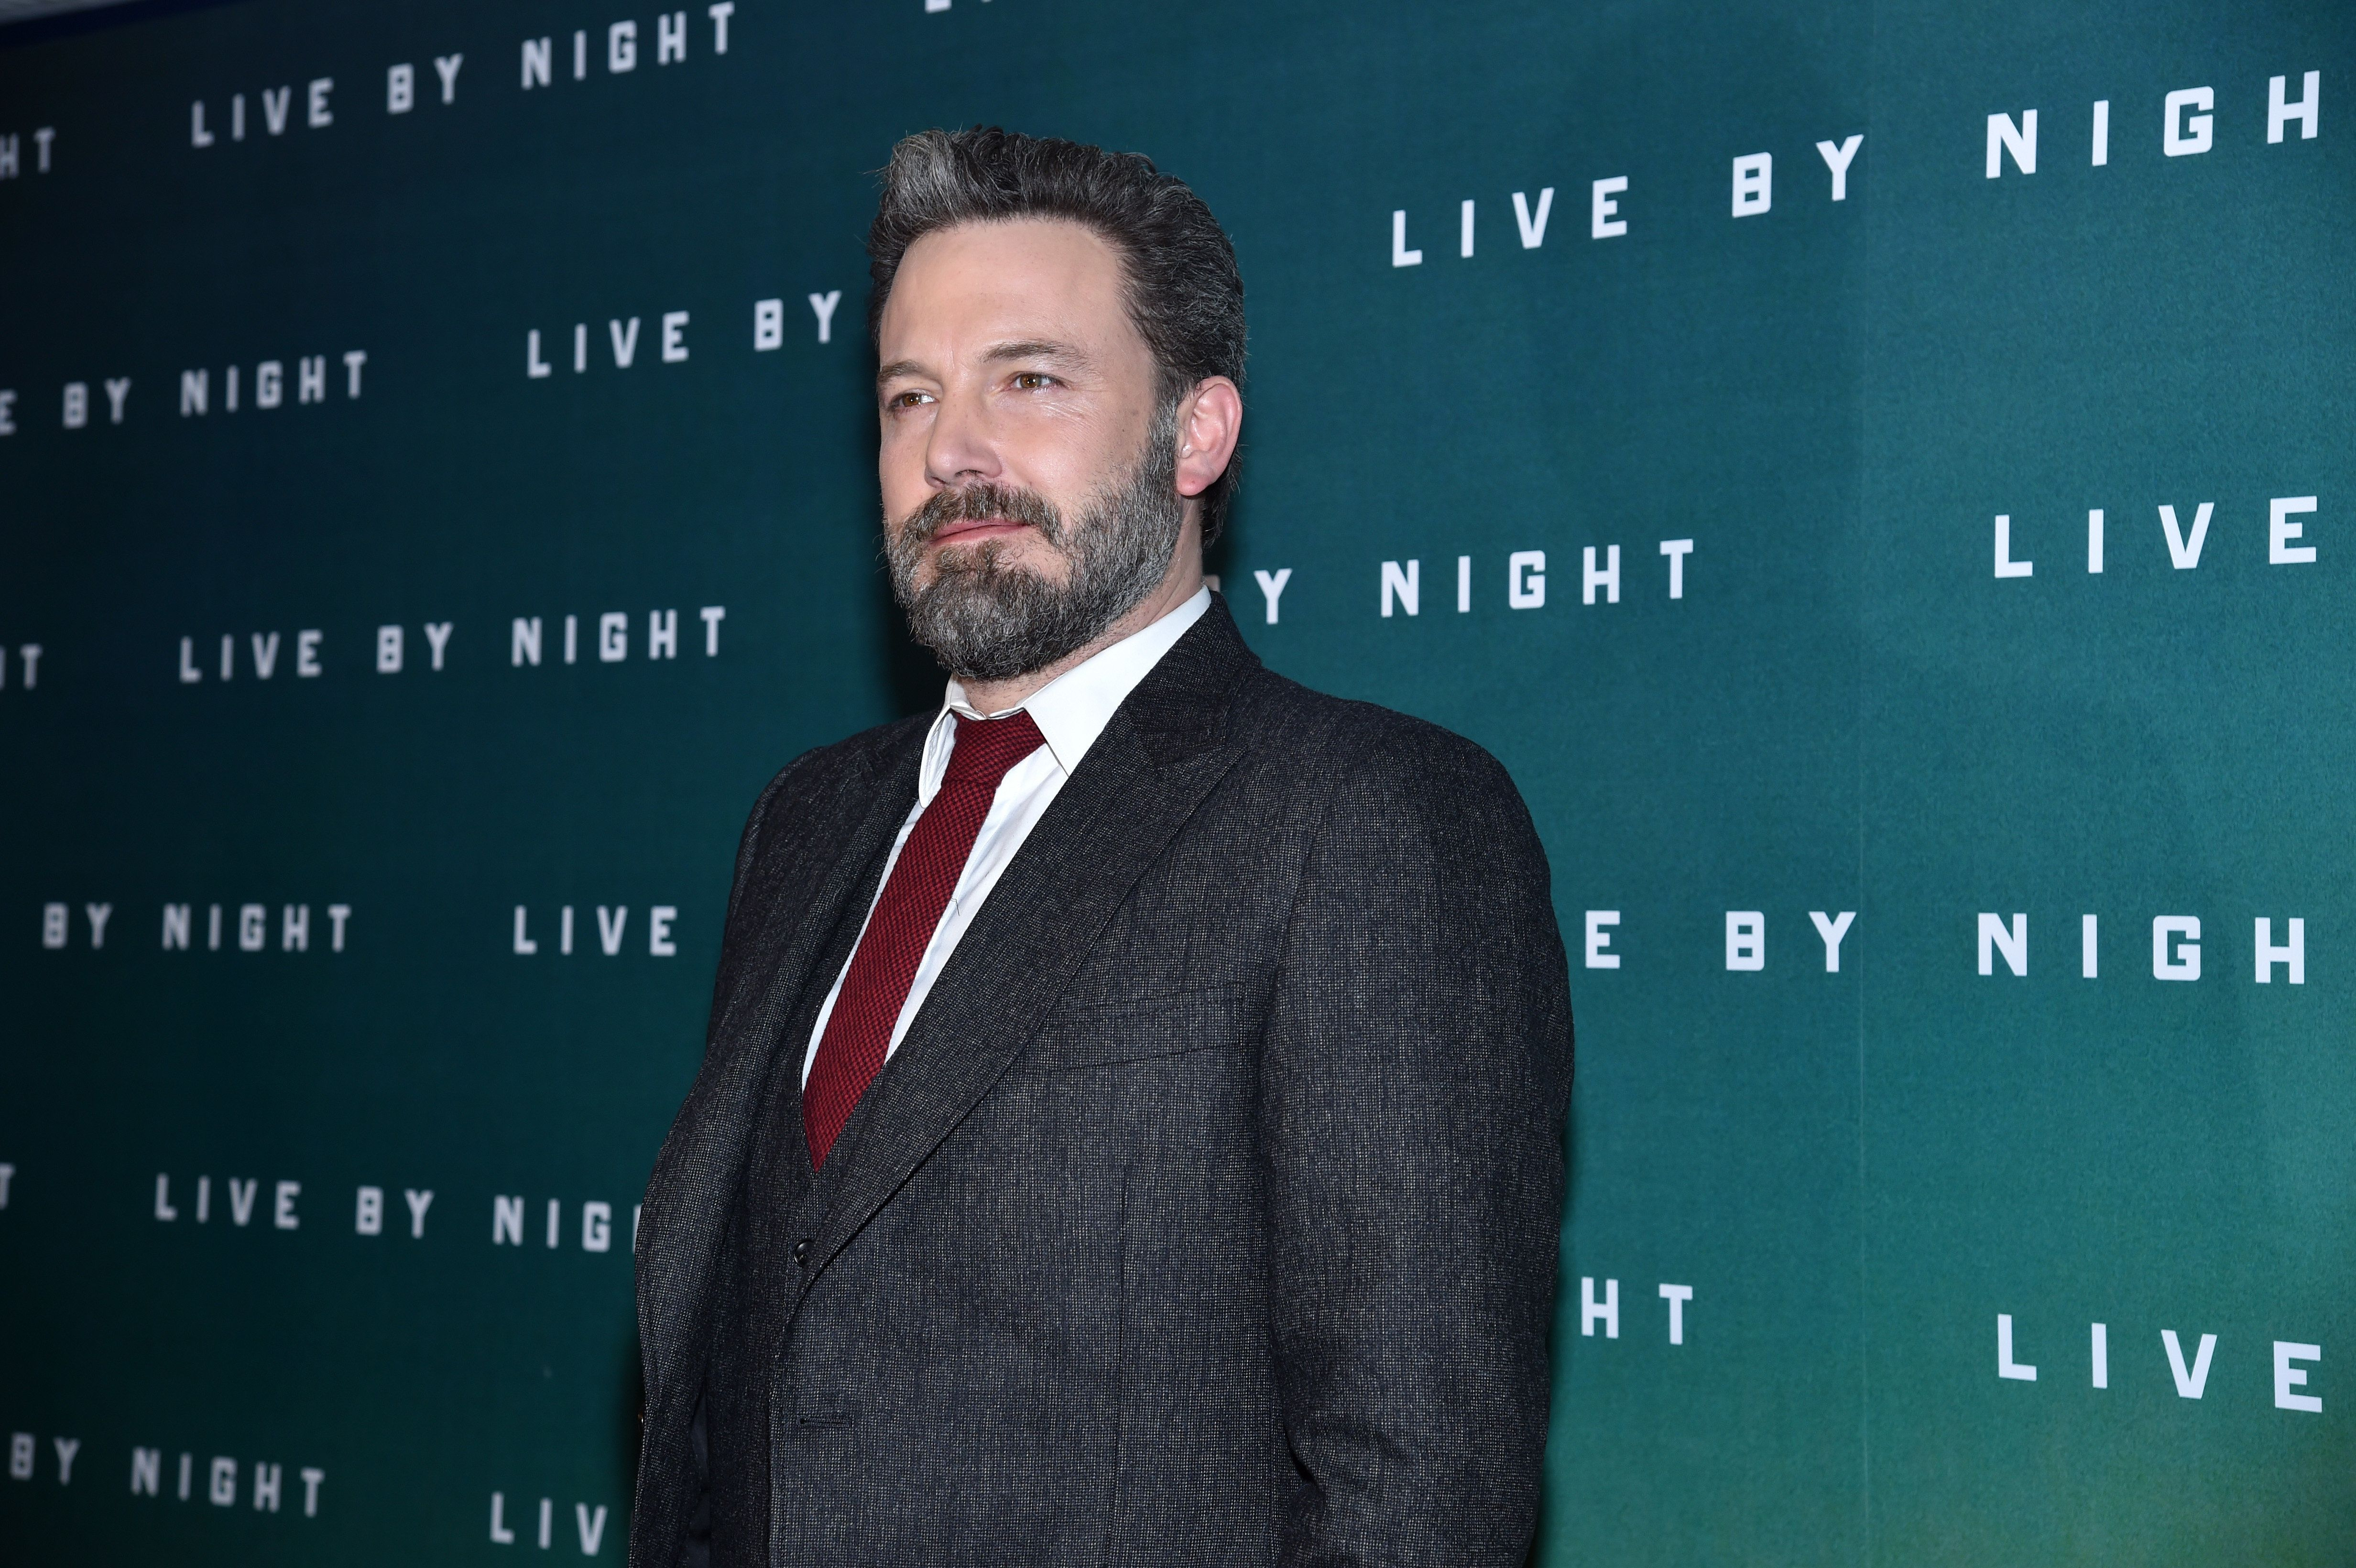 Ben Affleck Reveals He's 'Completed Treatment For Alcohol